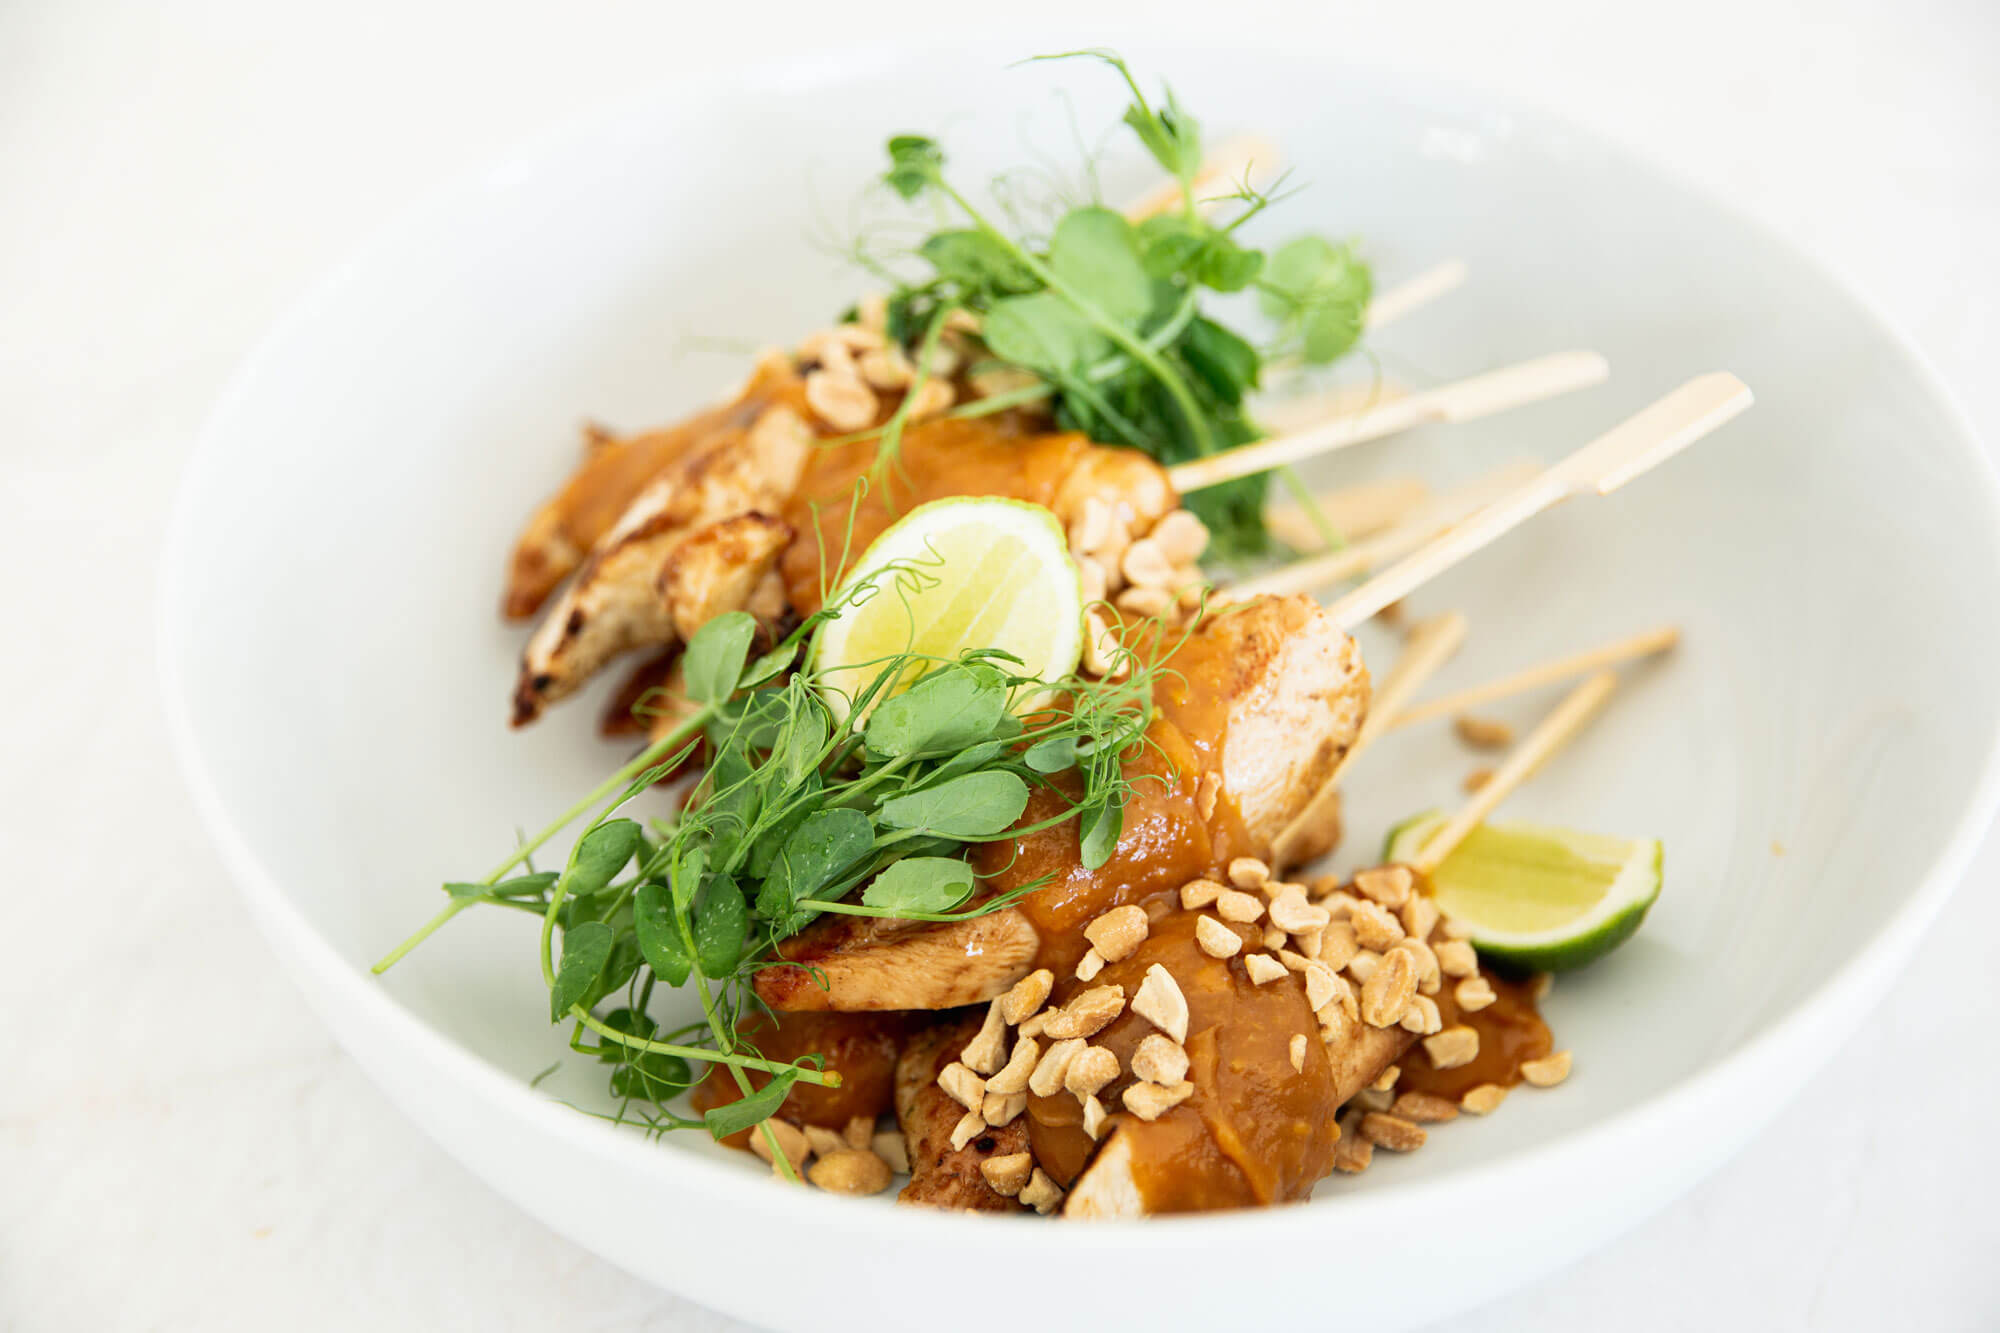 A bowl of chicken satay sticks from Catroux's Lunch, Salad and Dinner Catering Menu